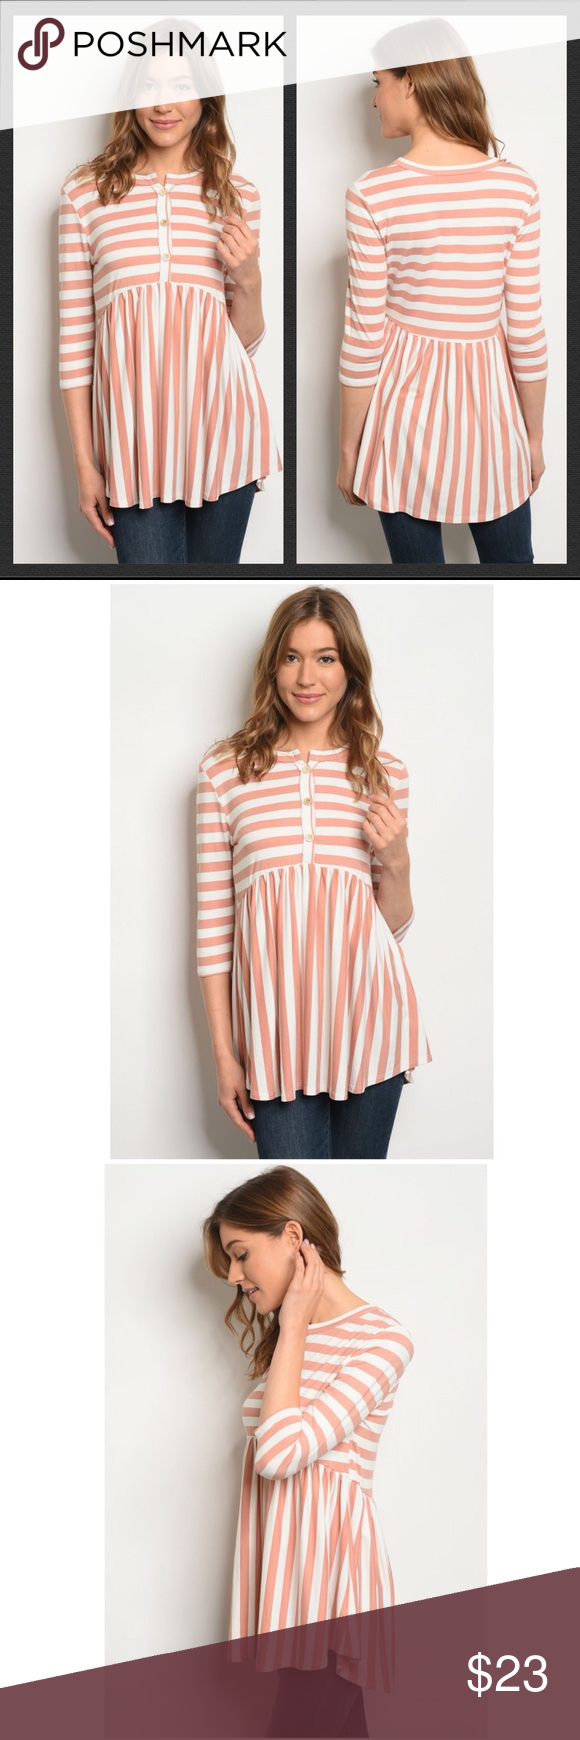 Blush Pink White Striped Top This top is made of a polyester/spandex blend, and …